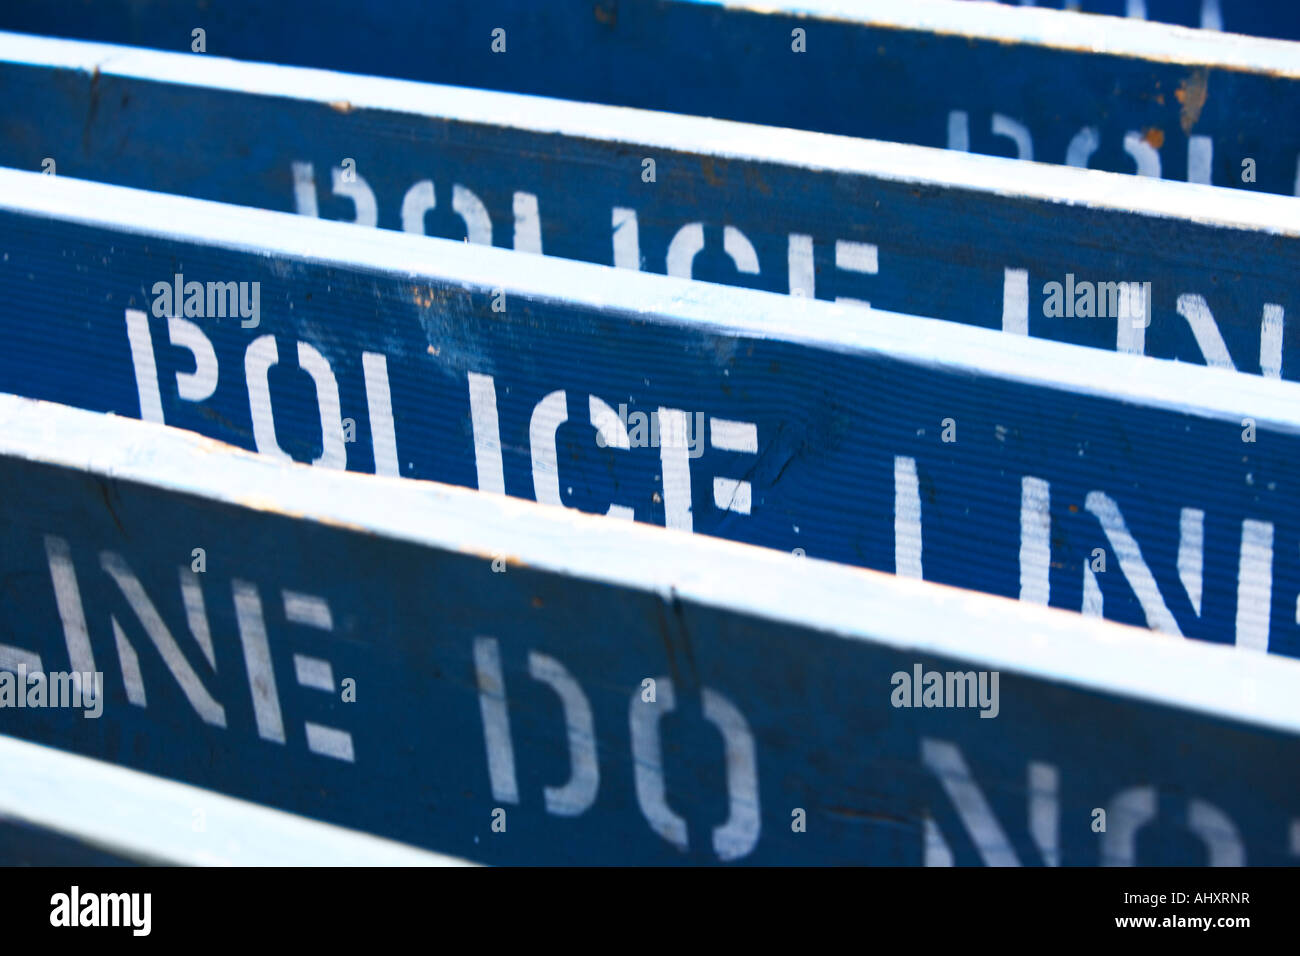 Row of Police Line barriers - Stock Image